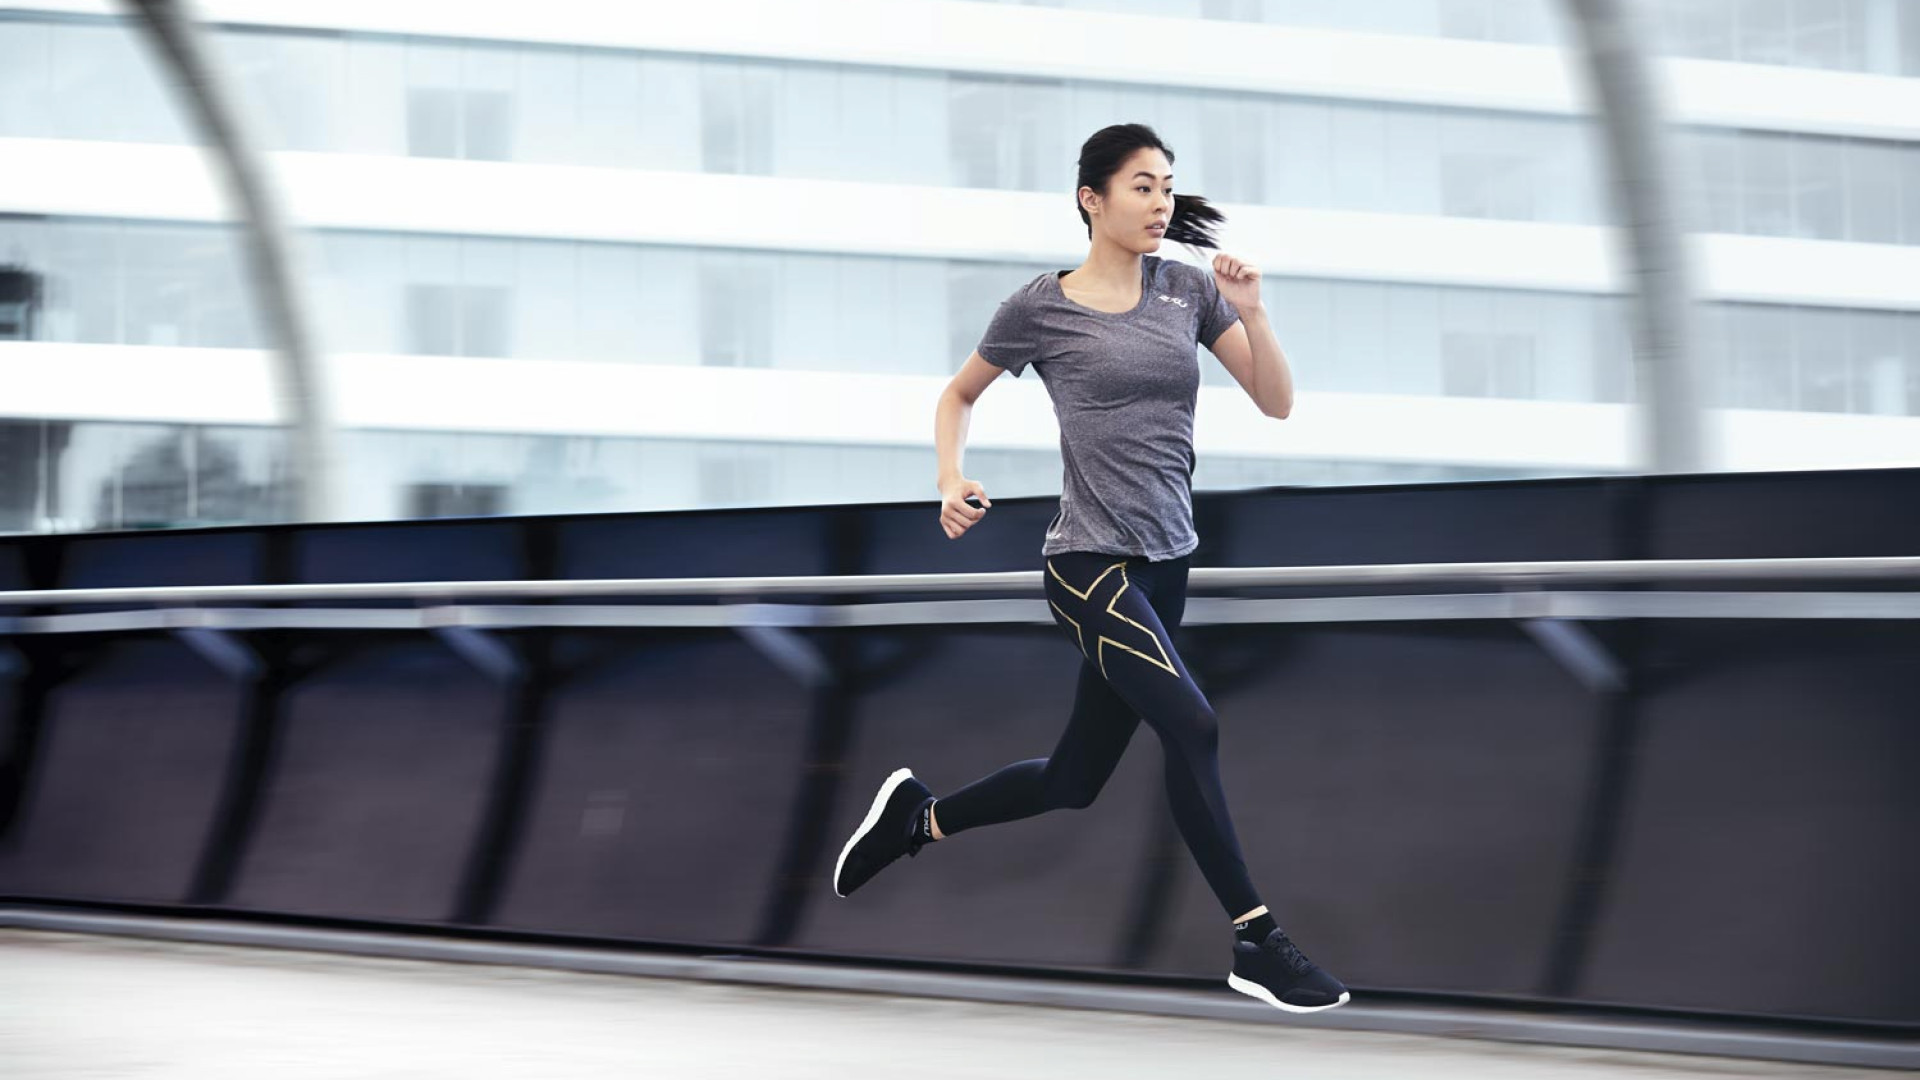 Female runner in 2XU compression garments